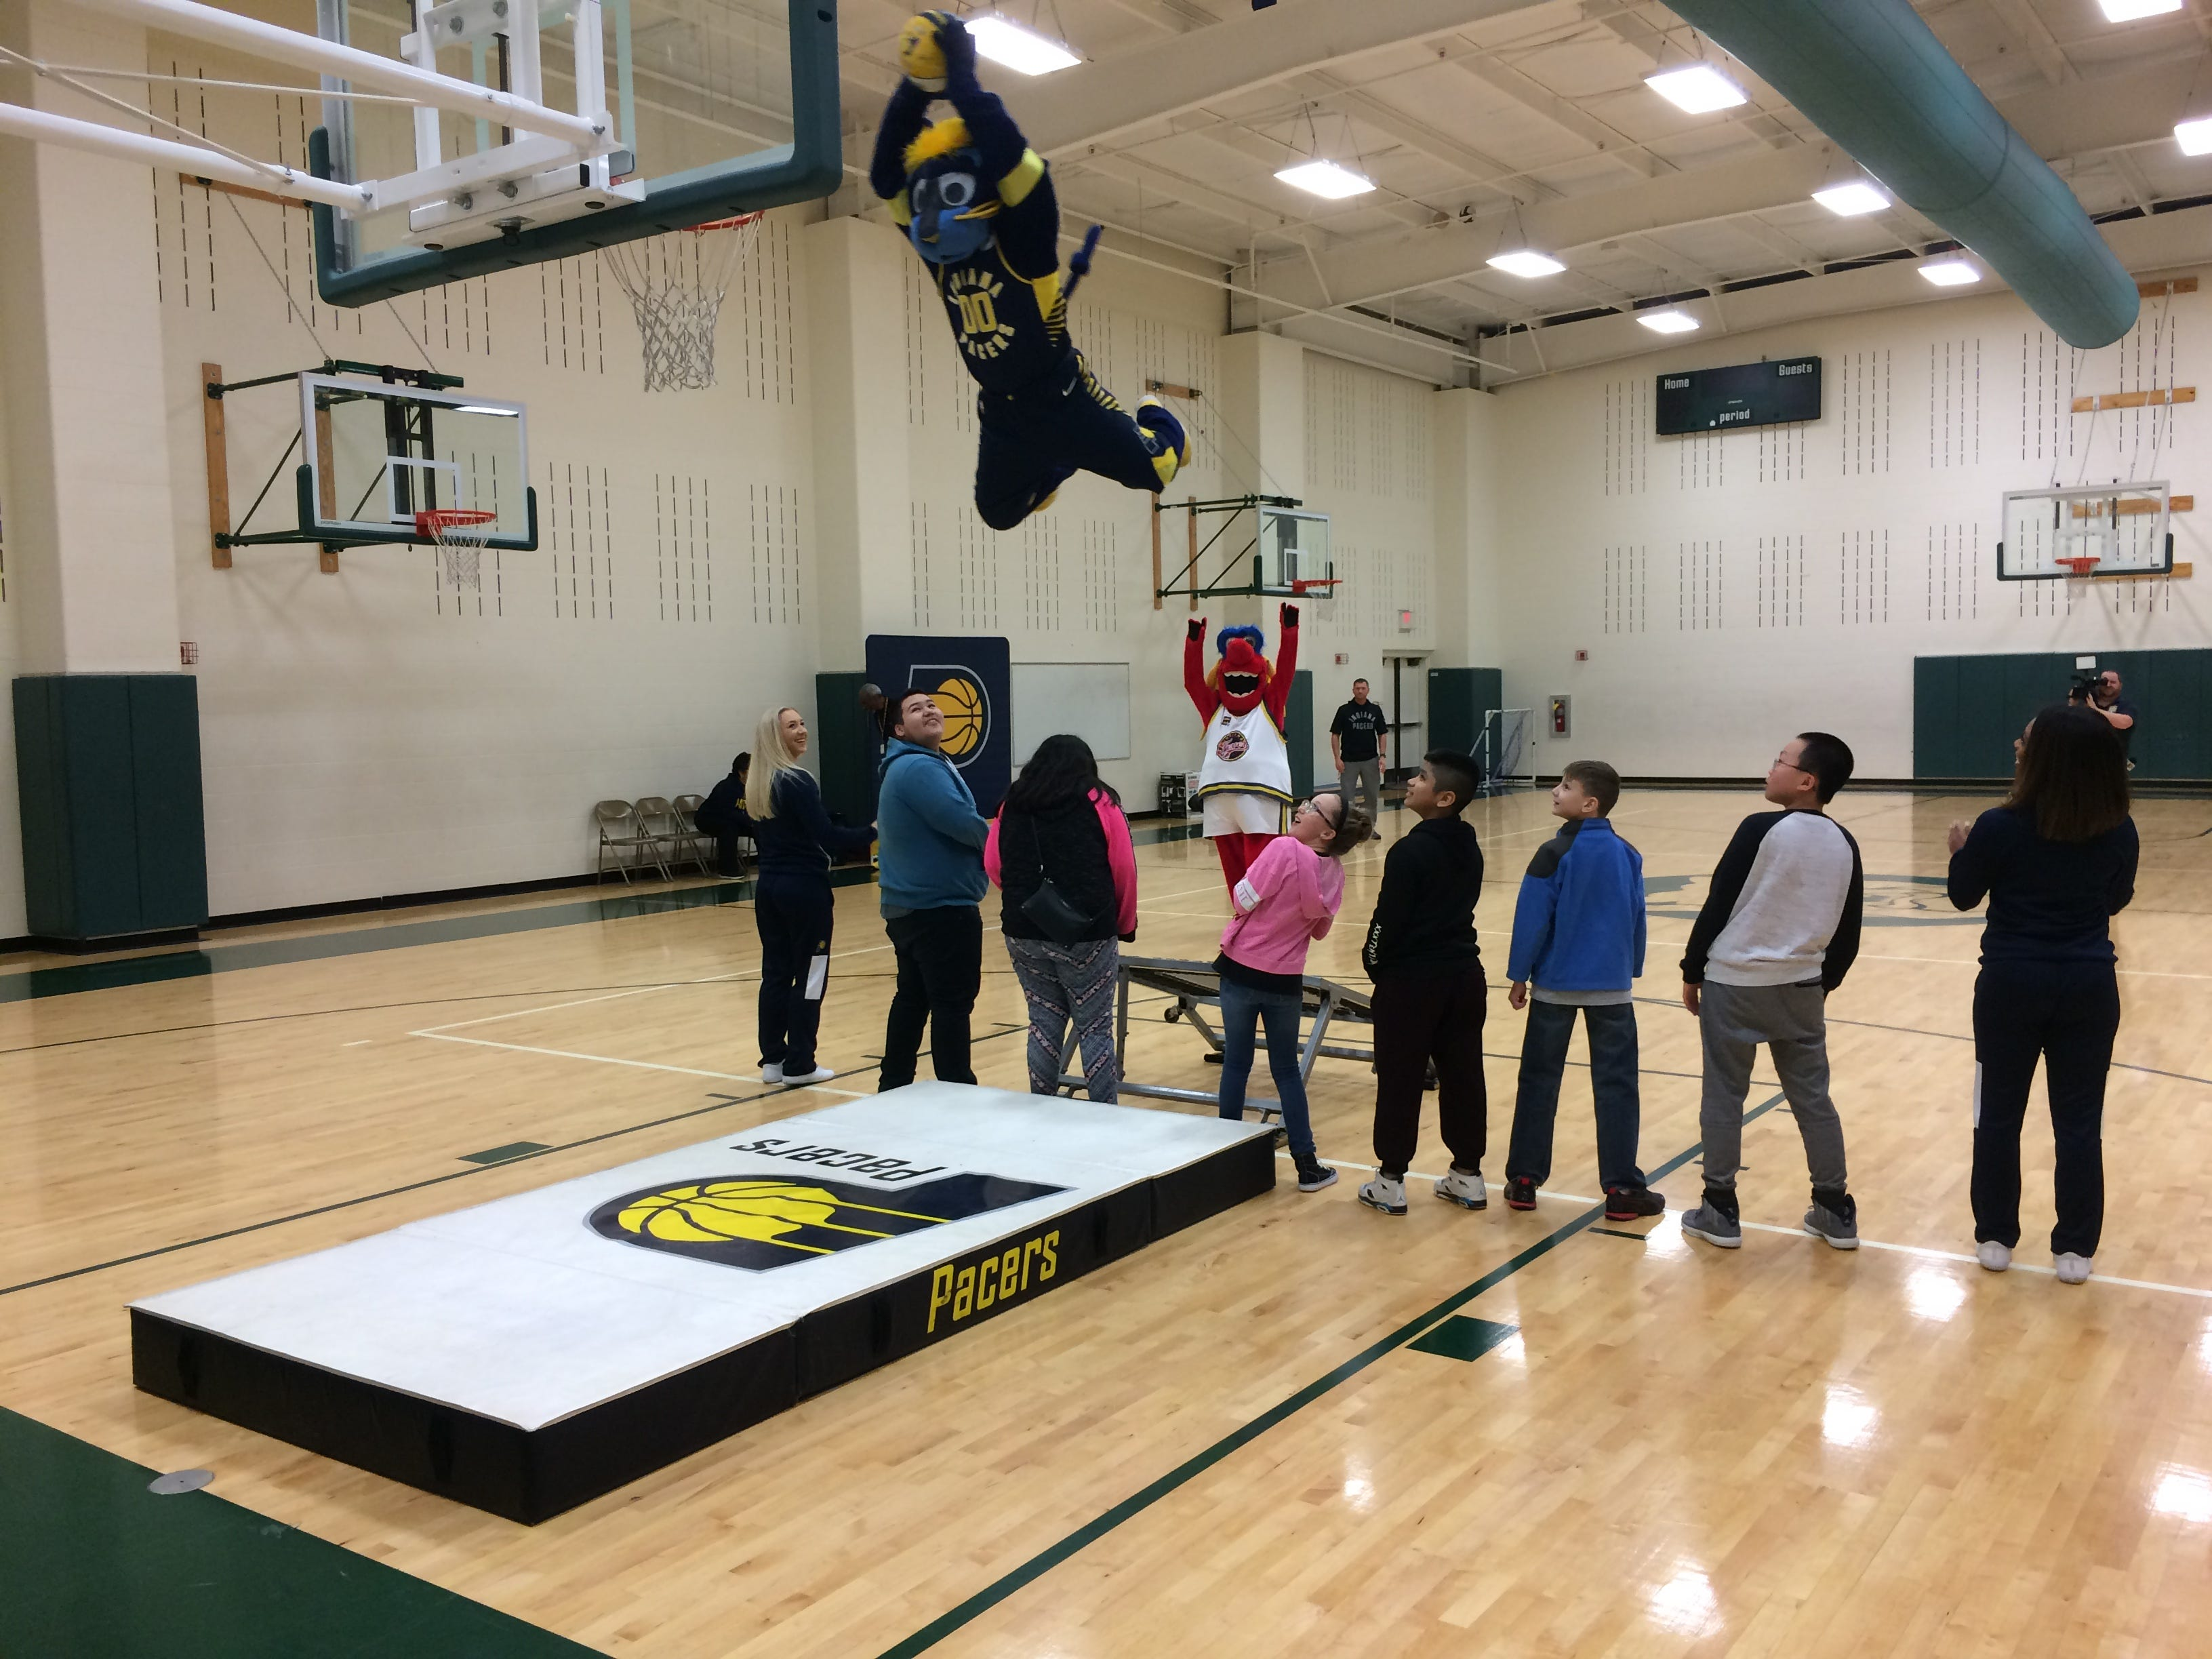 Boomer soars over Dennis Intermediate School students to dunk during Wednesday's program.